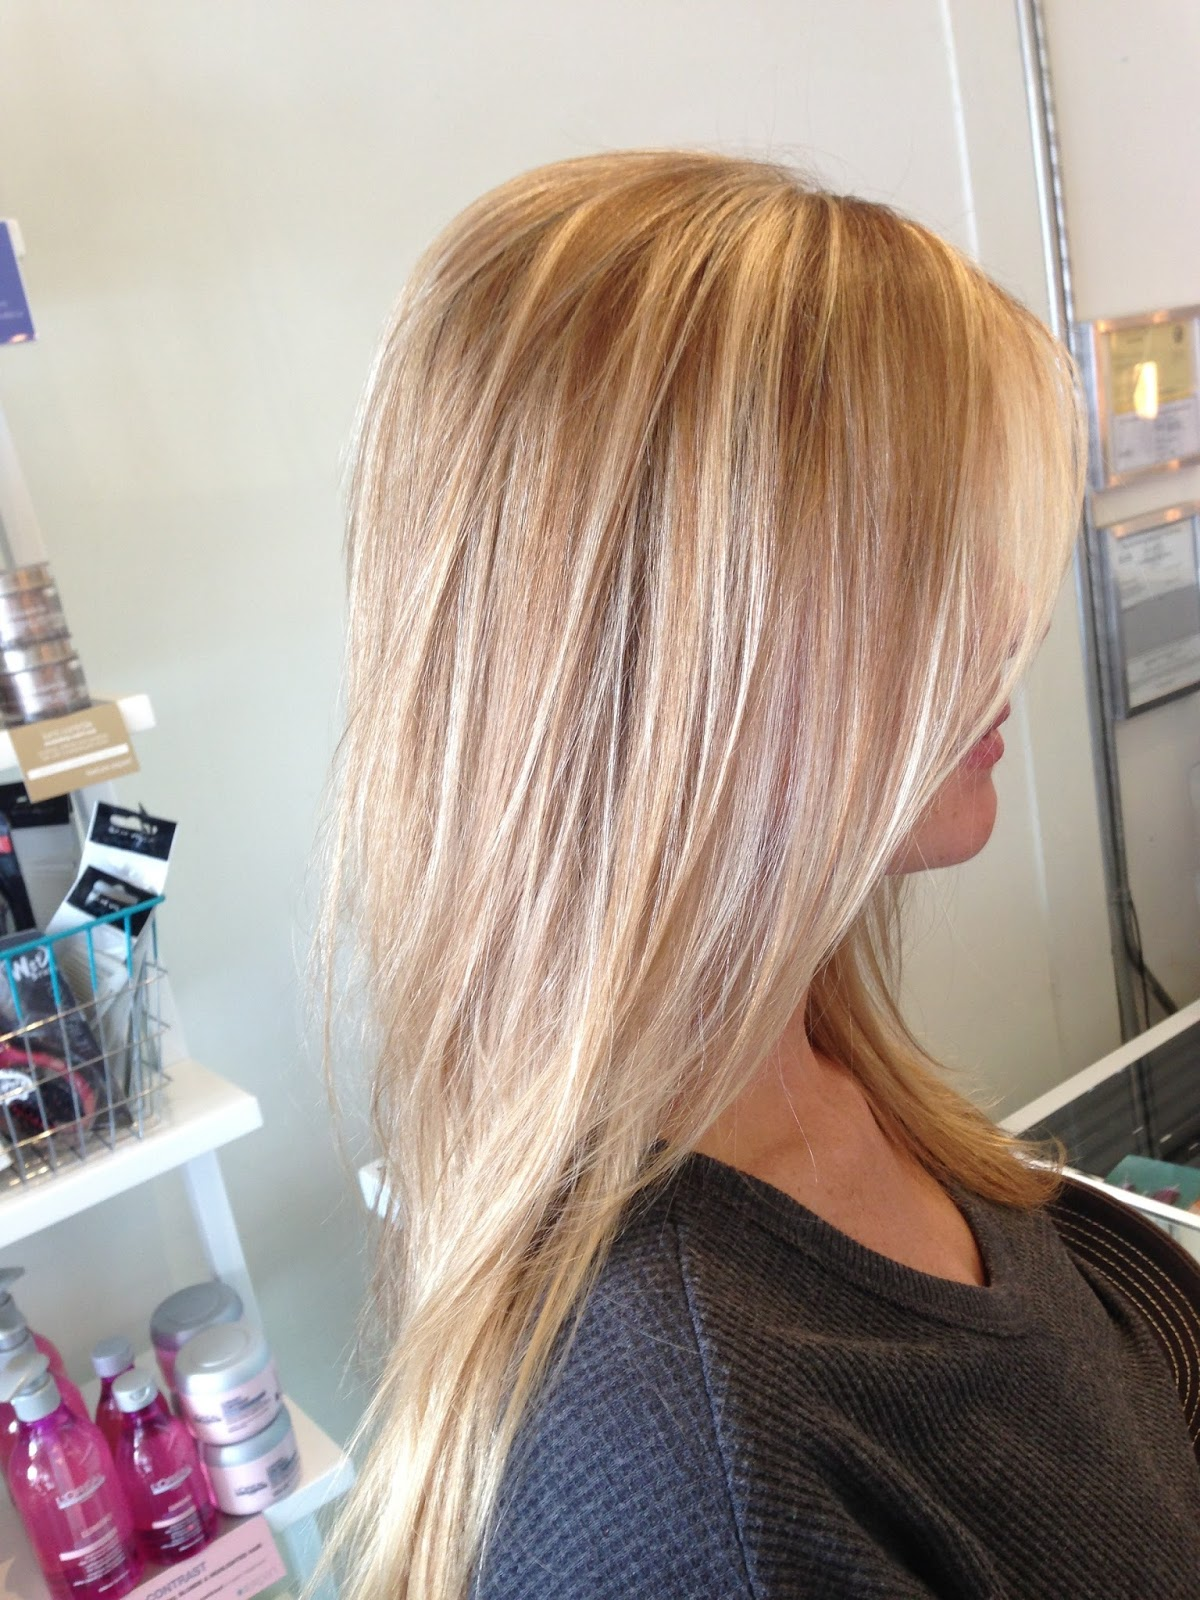 35 New Beige Blonde hair color ideas